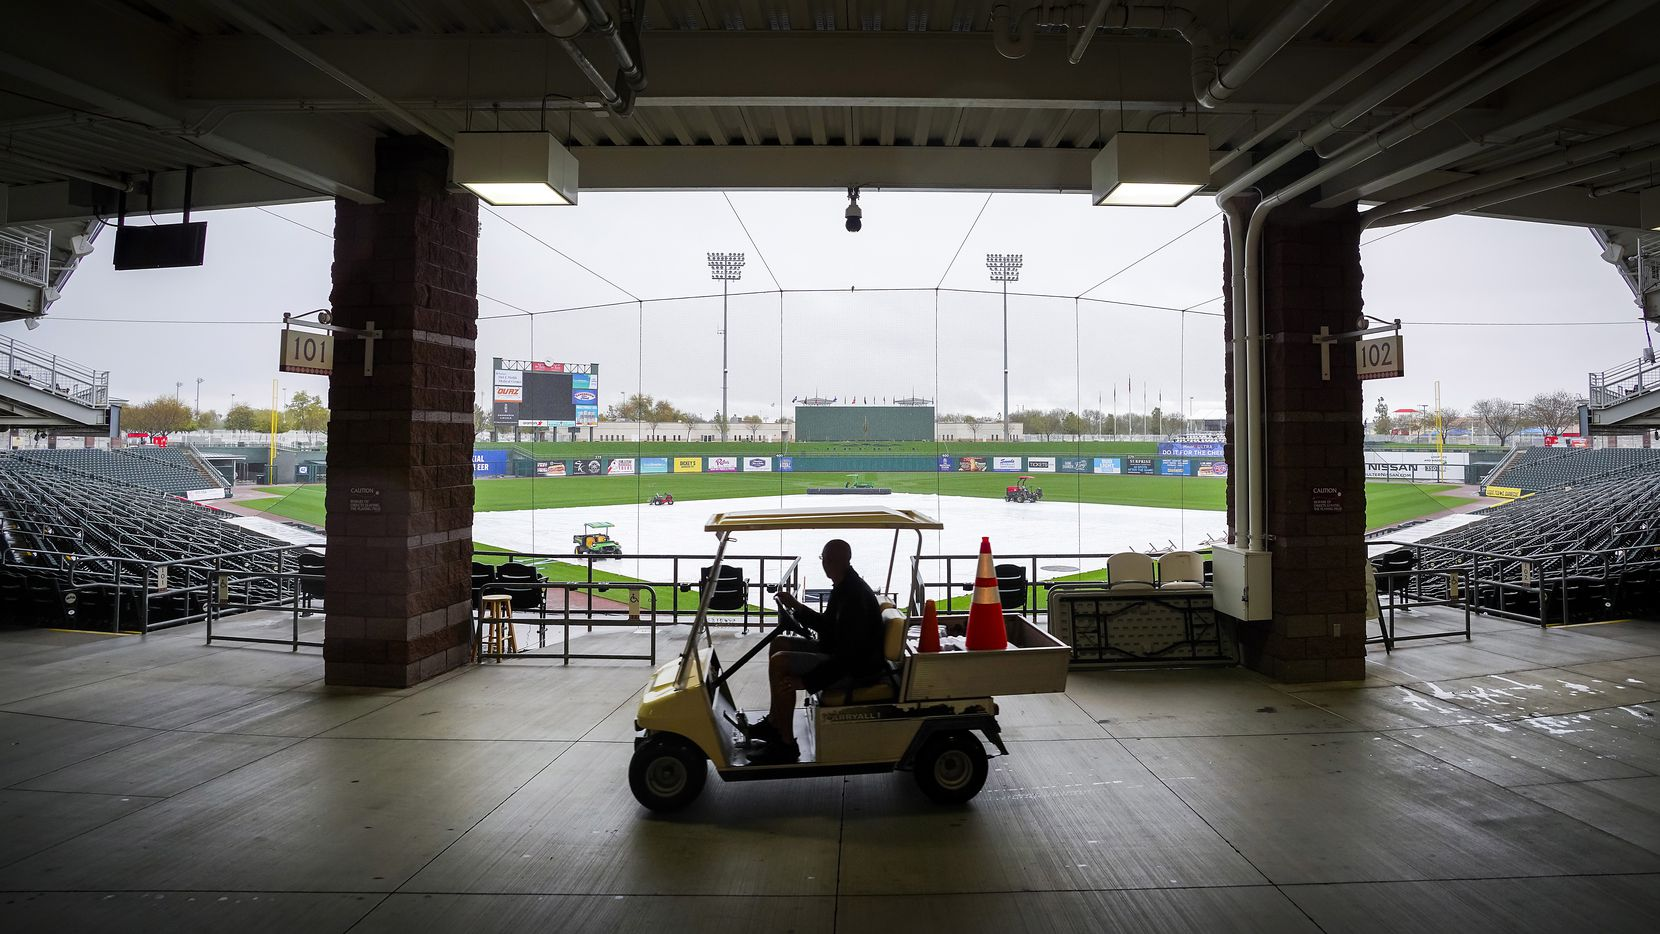 A stadium worker drives a cart through Surprise Stadium as tarp covers the field while rain falls on Saturday, Feb. 22, 2020, in Surprise, Ariz.